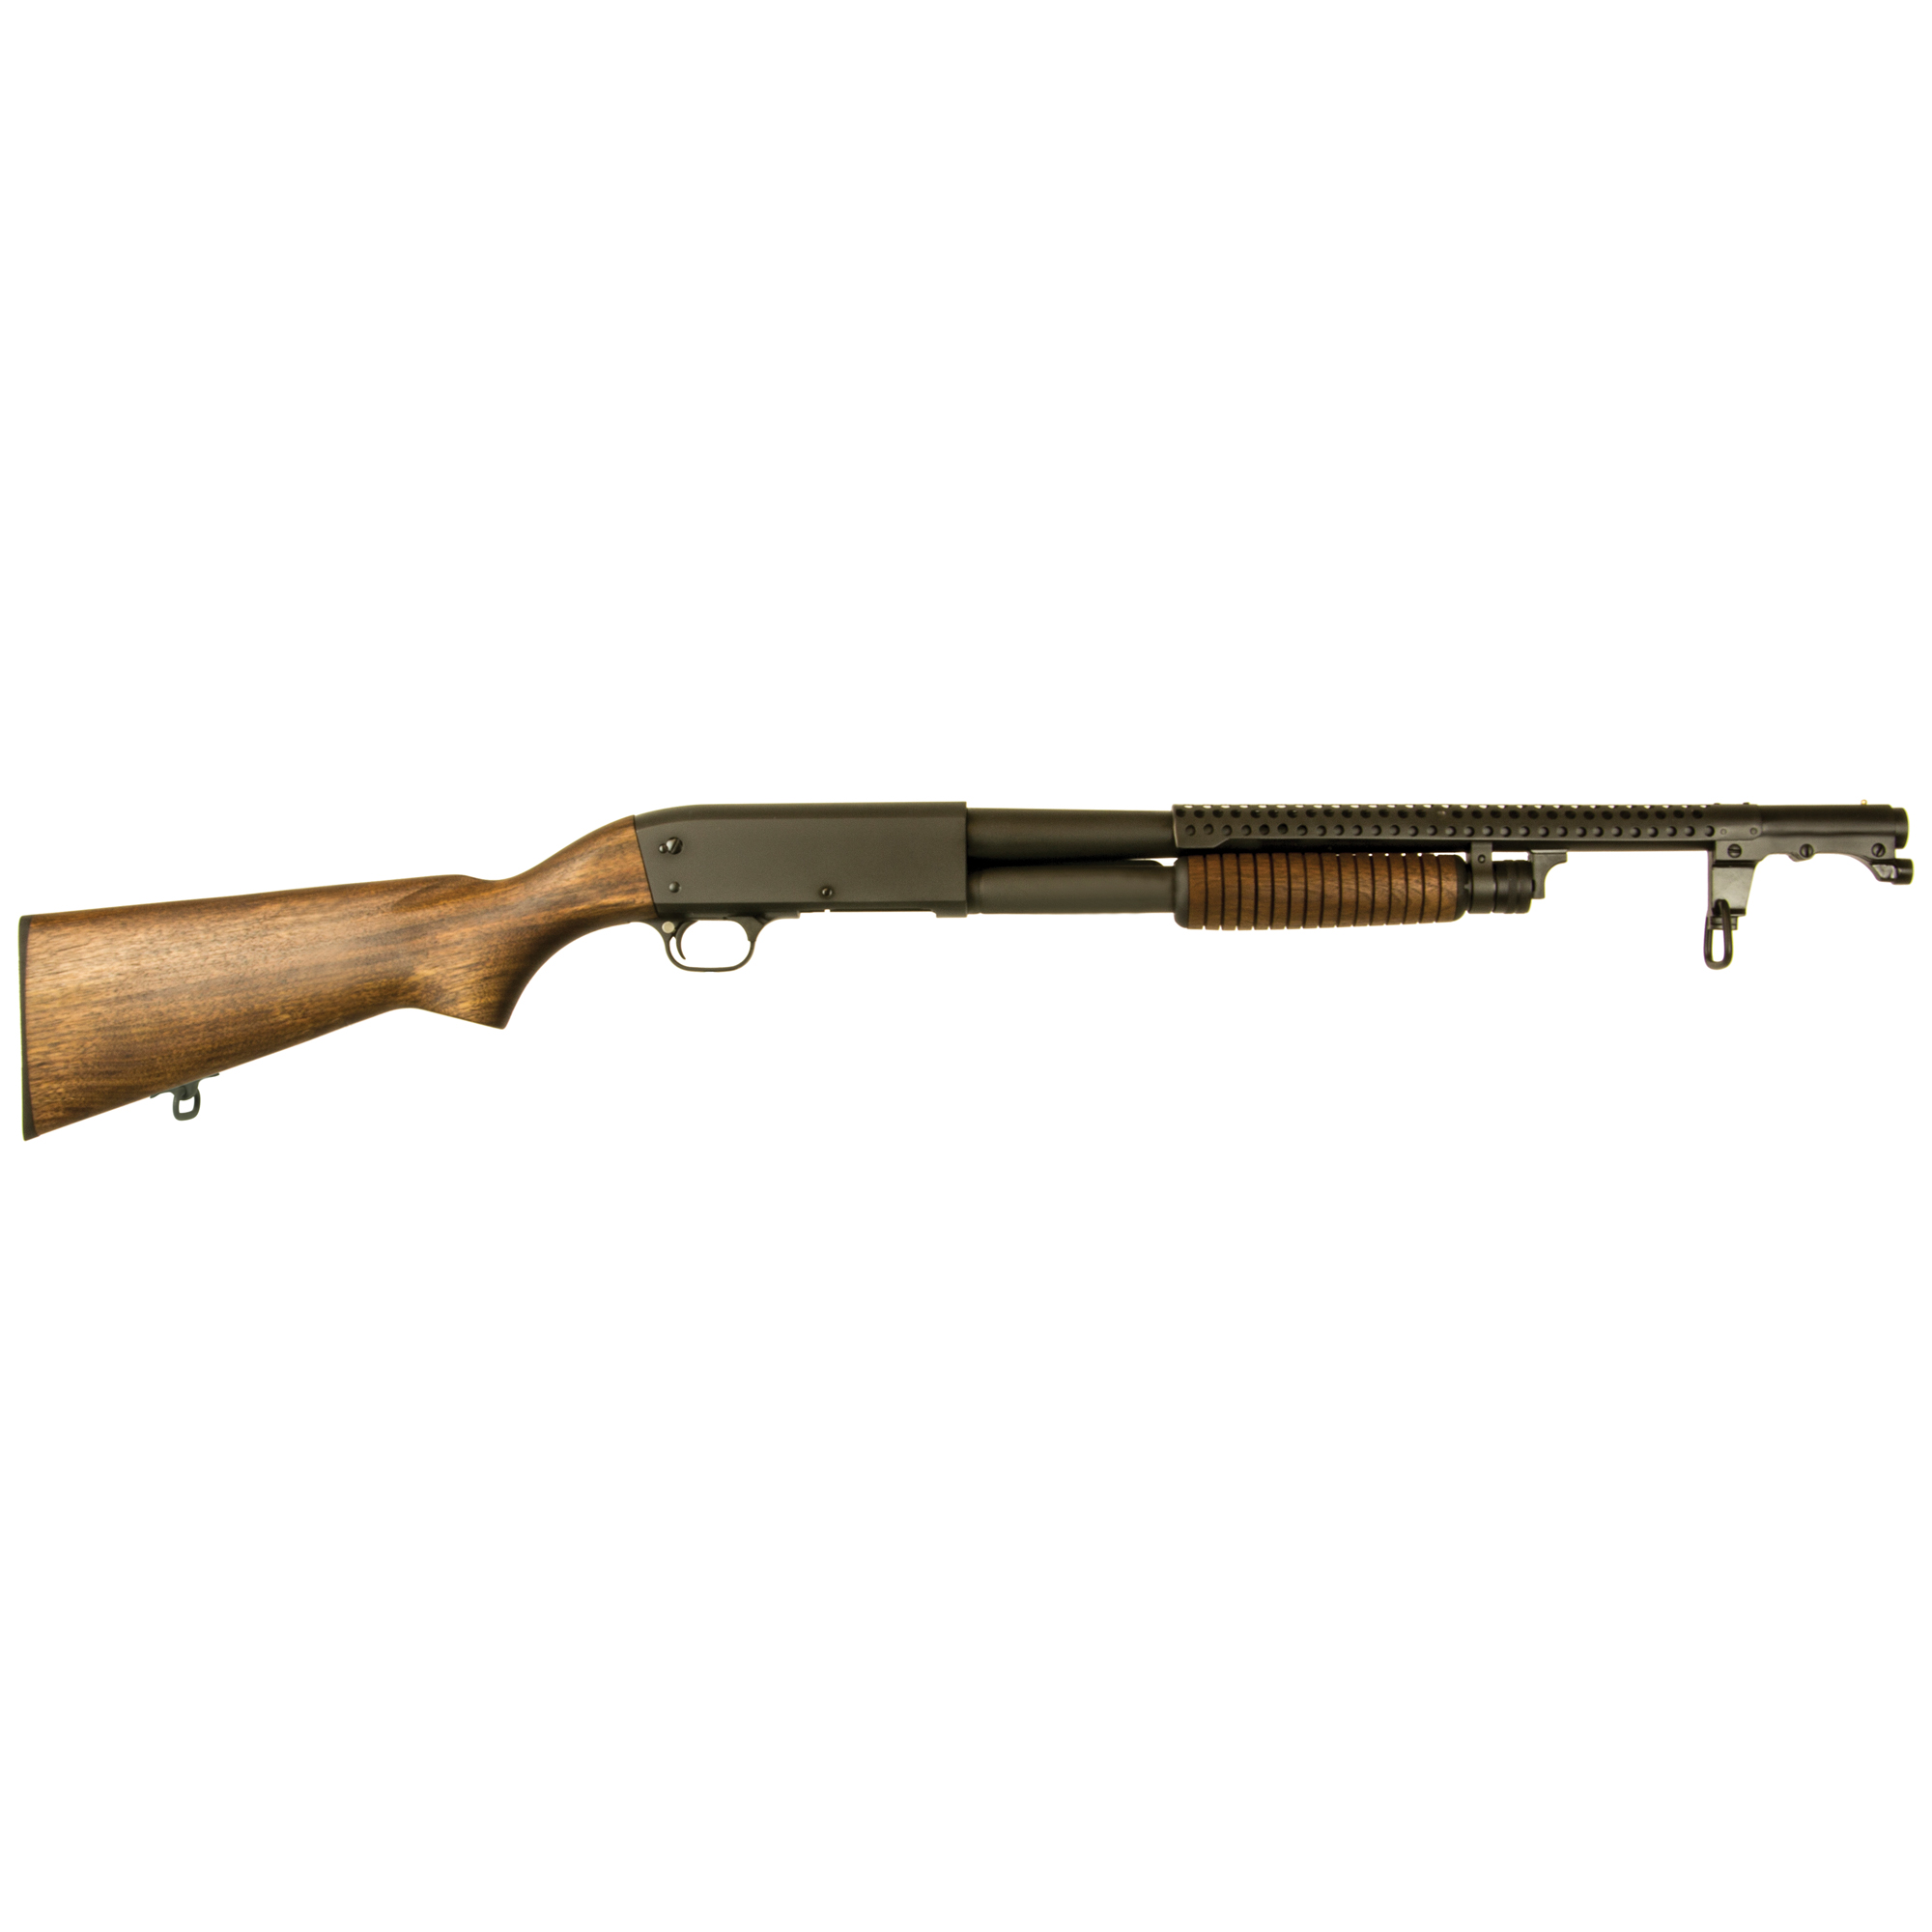 "The Inland M37 Trench Shotgun is faithful to the original from its bead sight"" Parkerized finish"" oiled stock and ventilated hand guard. The Inland M37 is based on the original Ithaca Model 37 Trench Gun which was a variation of the Browning Model 17."